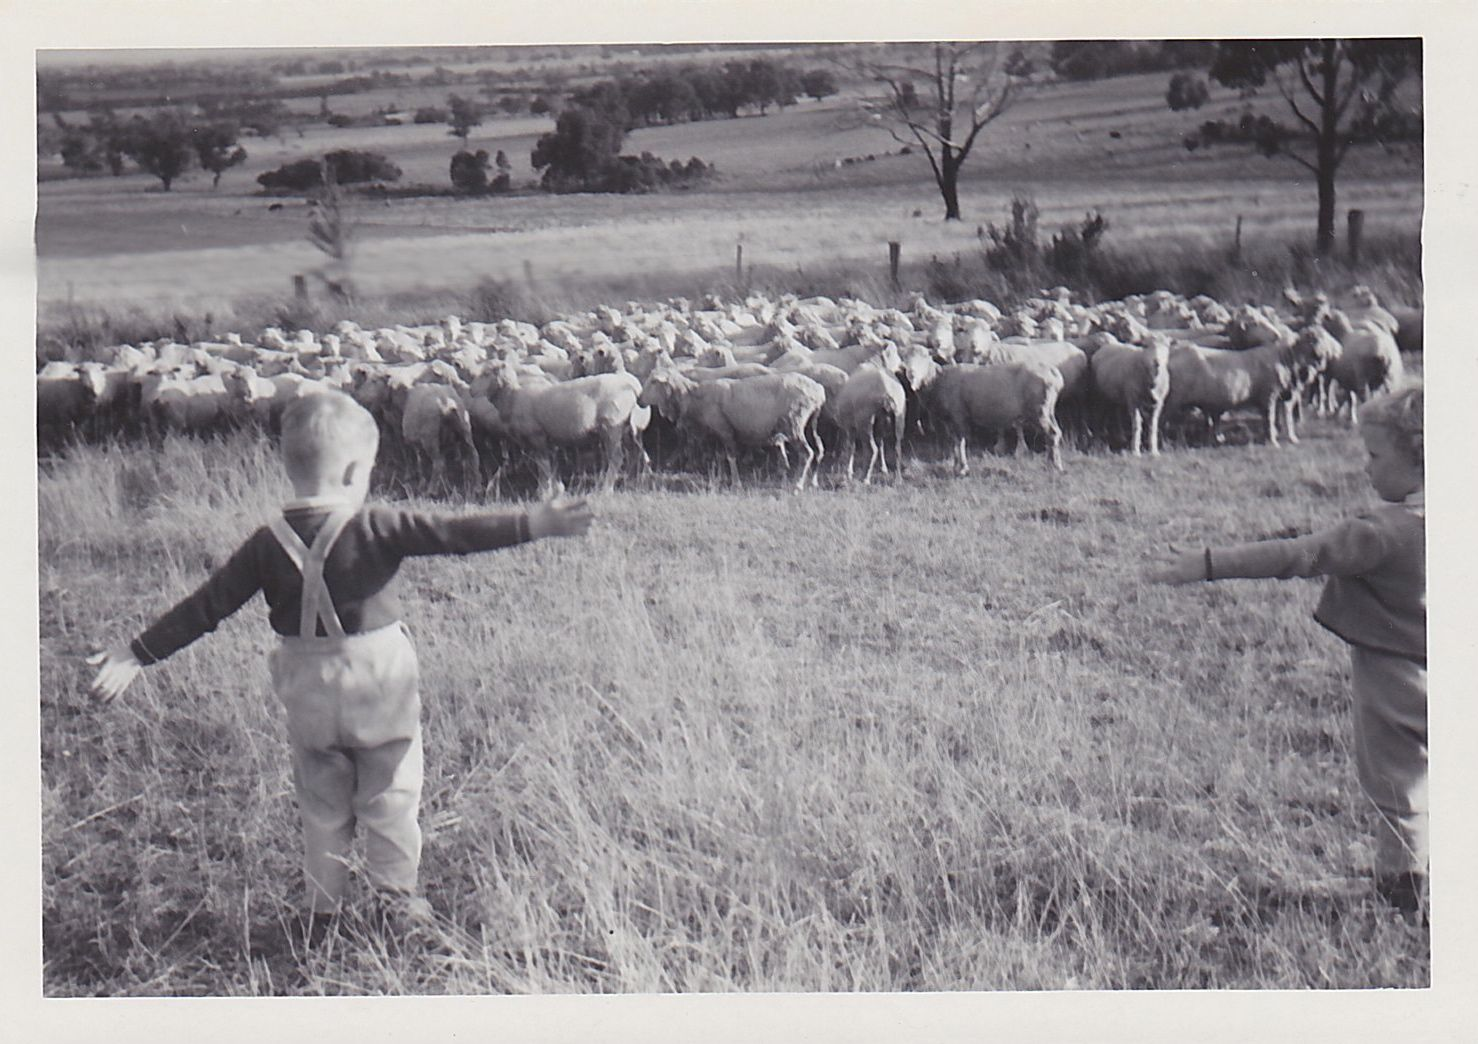 Chas Dale (Liza's twin brother, left) and Liza Dale-Hallett (right) rounding up sheep at their family farm, Tynong, 1967, Source: Supplied, Liza Dale-Hallett